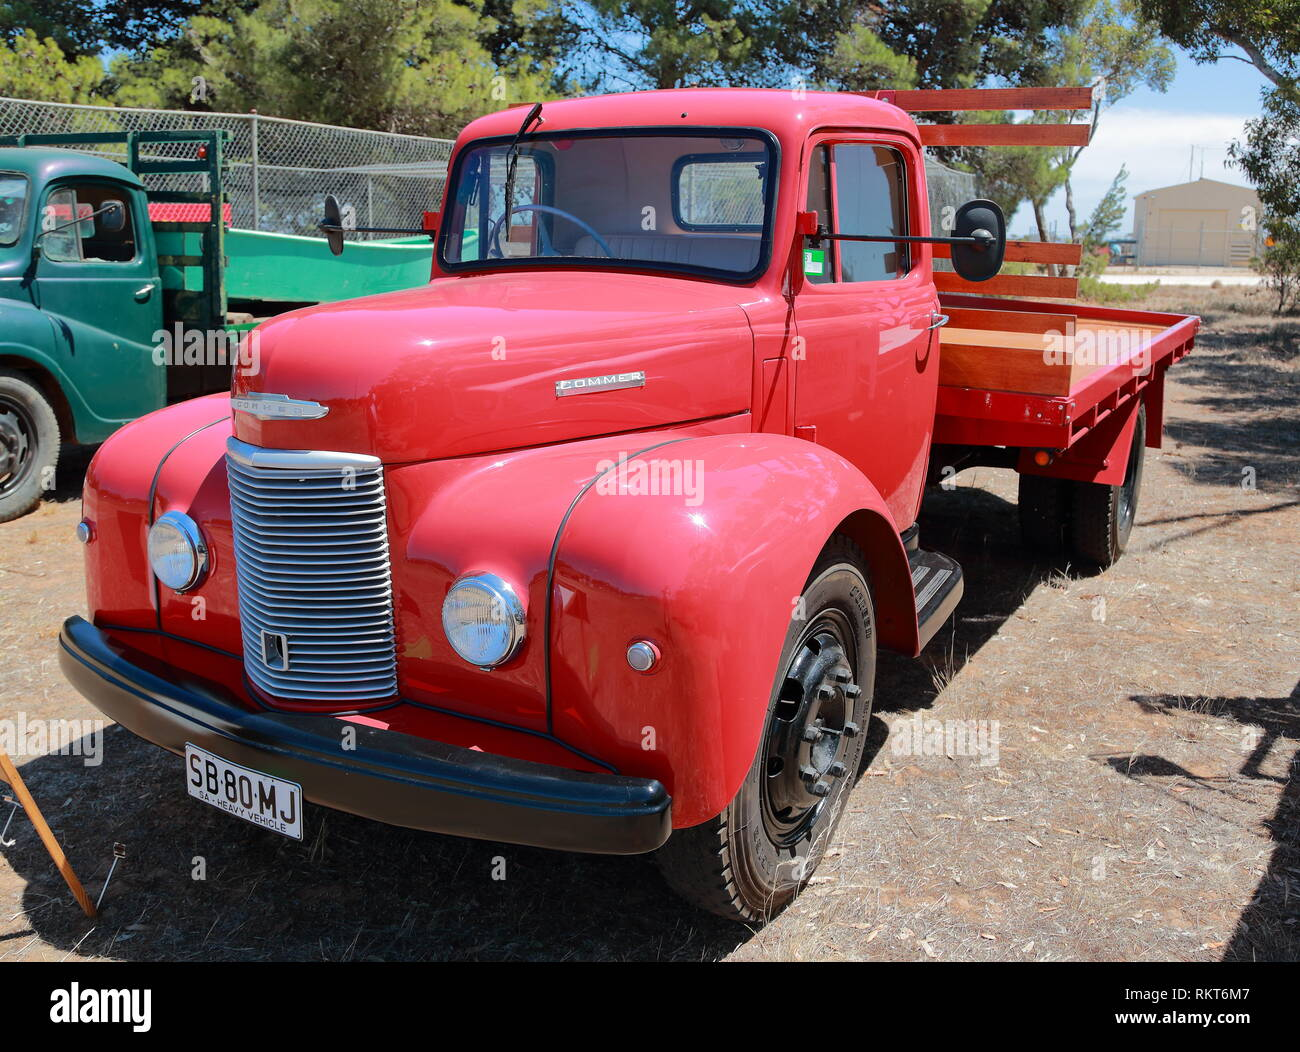 Commer Truck Stock Photos & Commer Truck Stock Images - Alamy